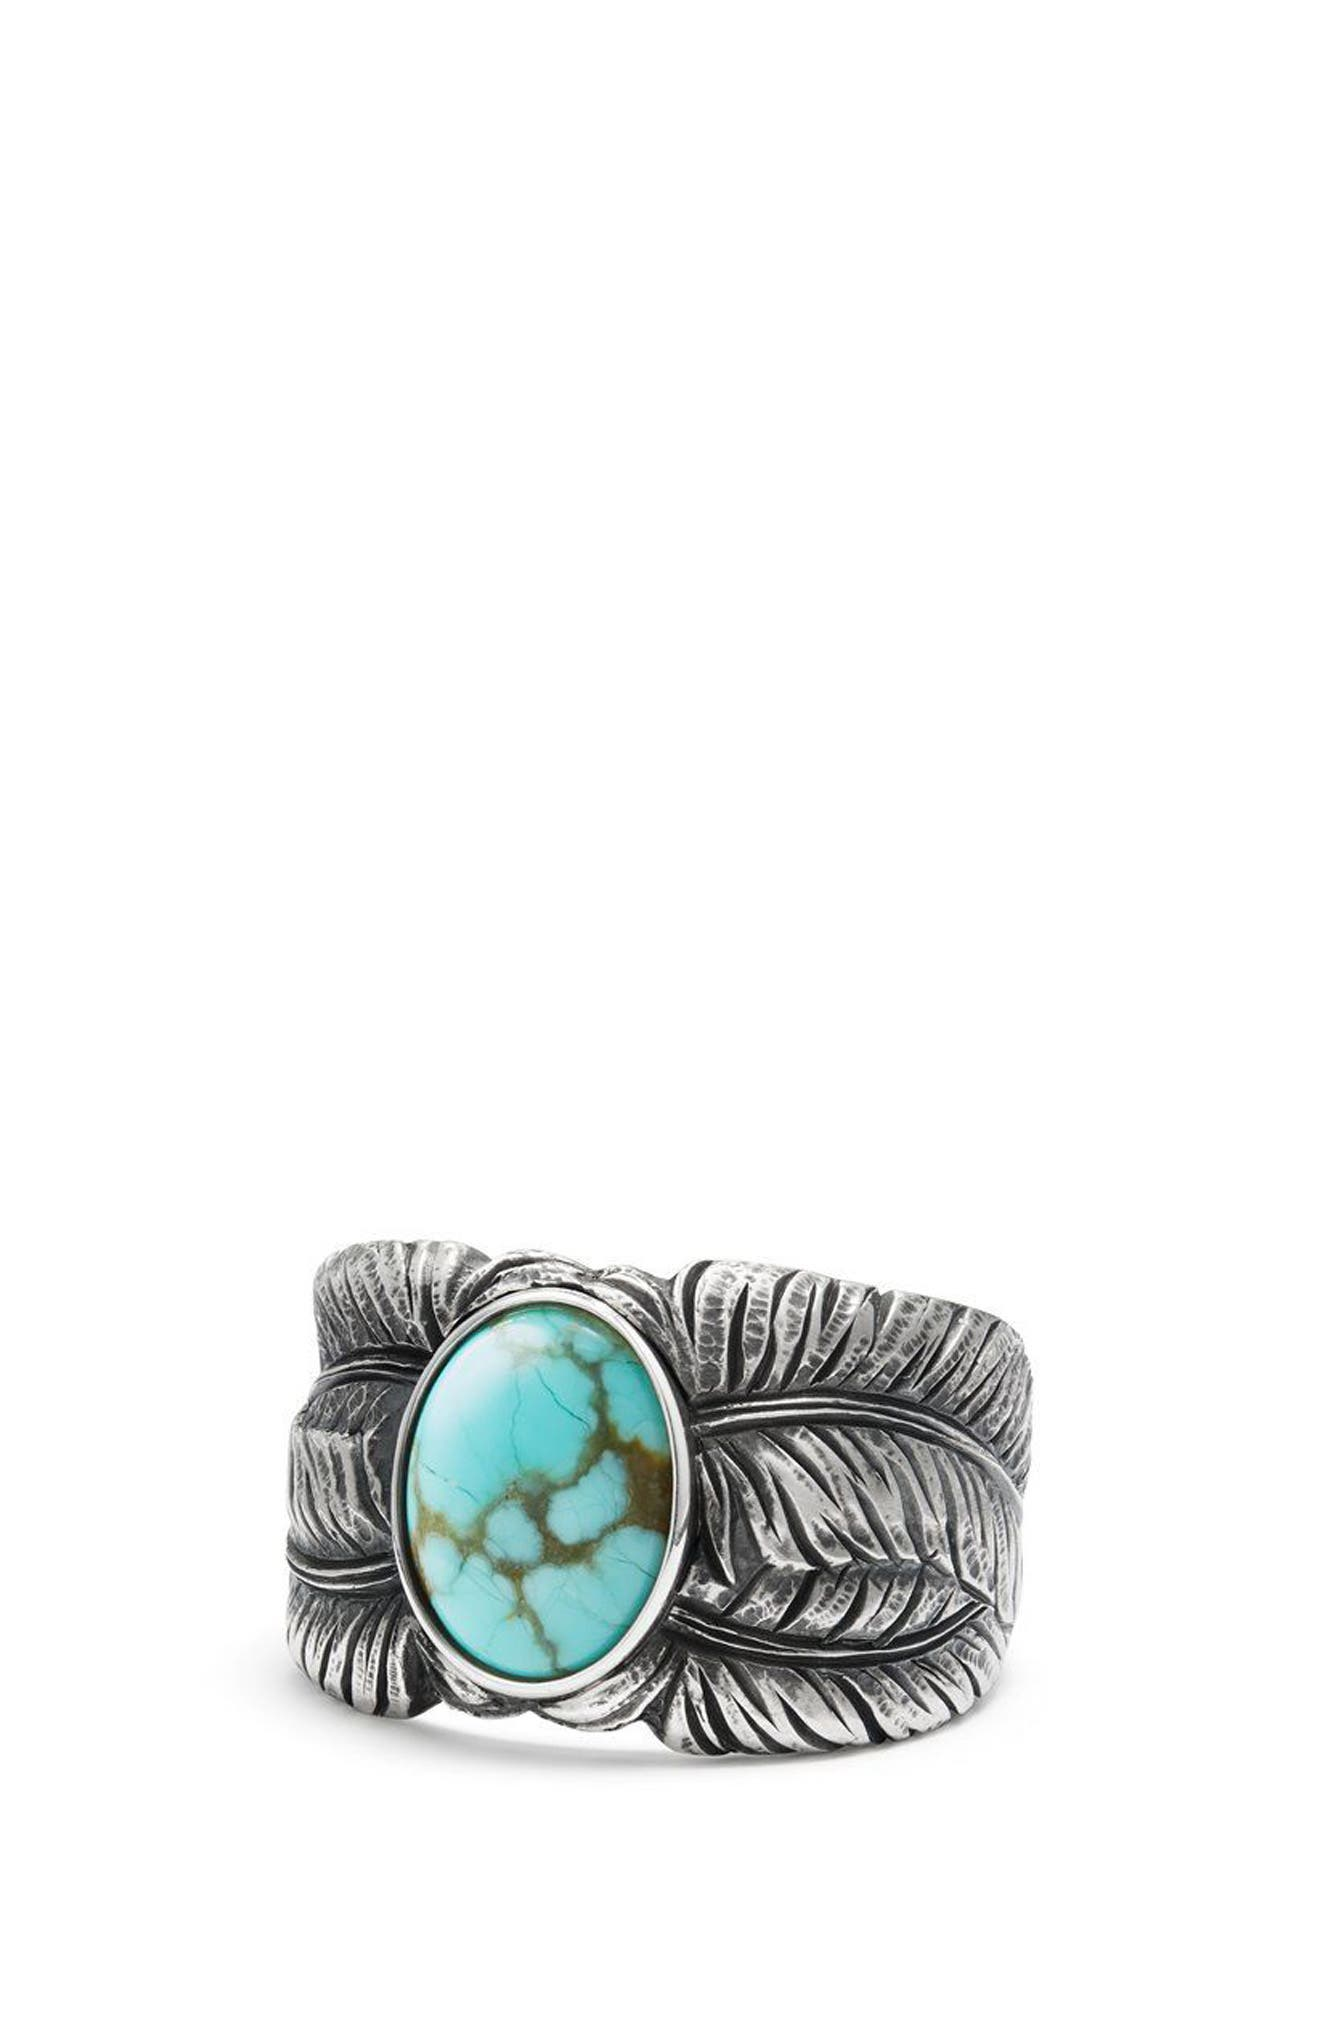 Southwest Cigar Band Feather Ring with Turquoise,                             Alternate thumbnail 3, color,                             Turquoise